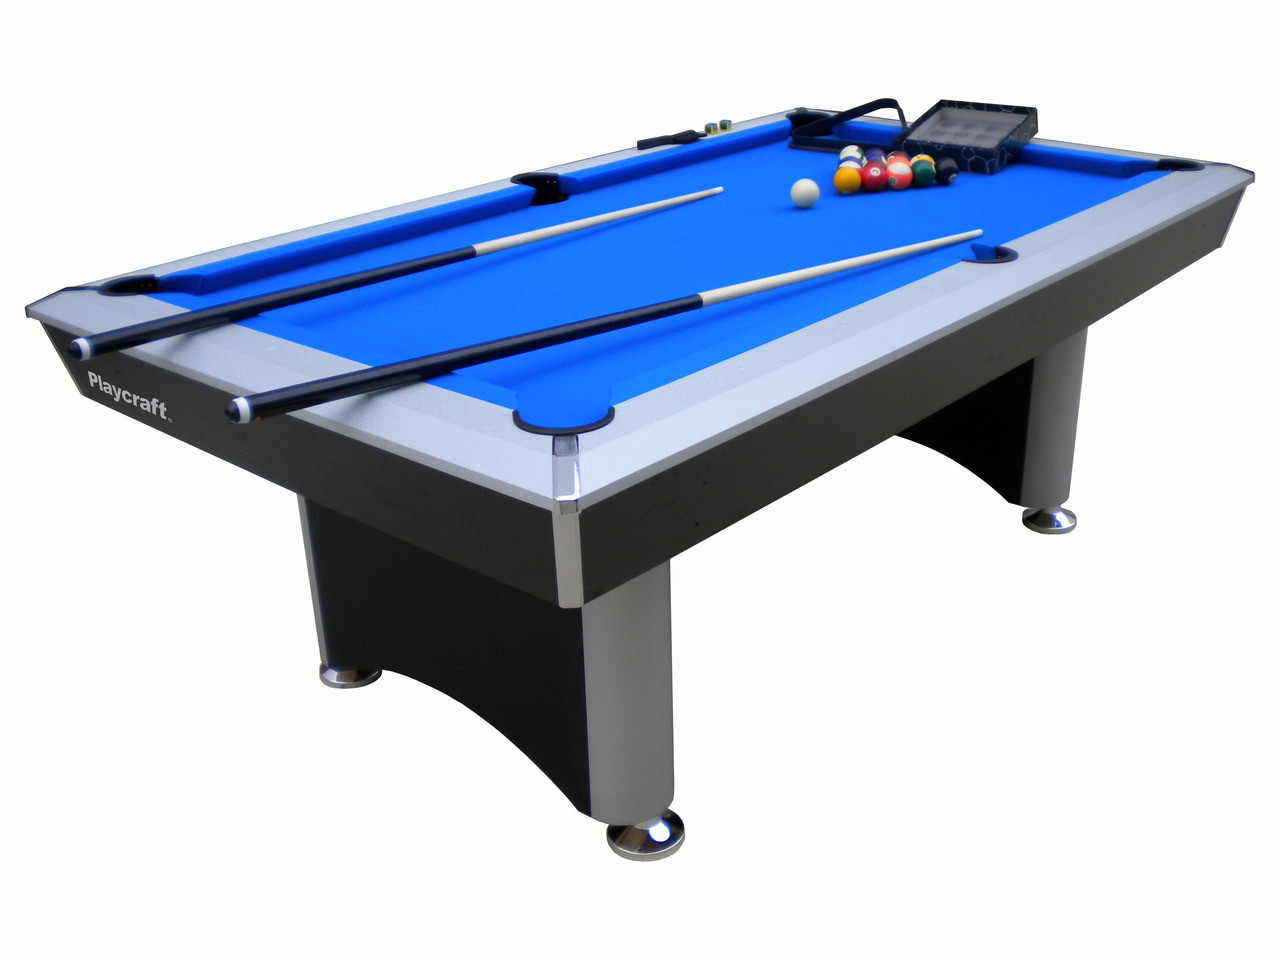 Sprint Pool Table With Electric Blue Cloth Playcraft - Electric blue pool table